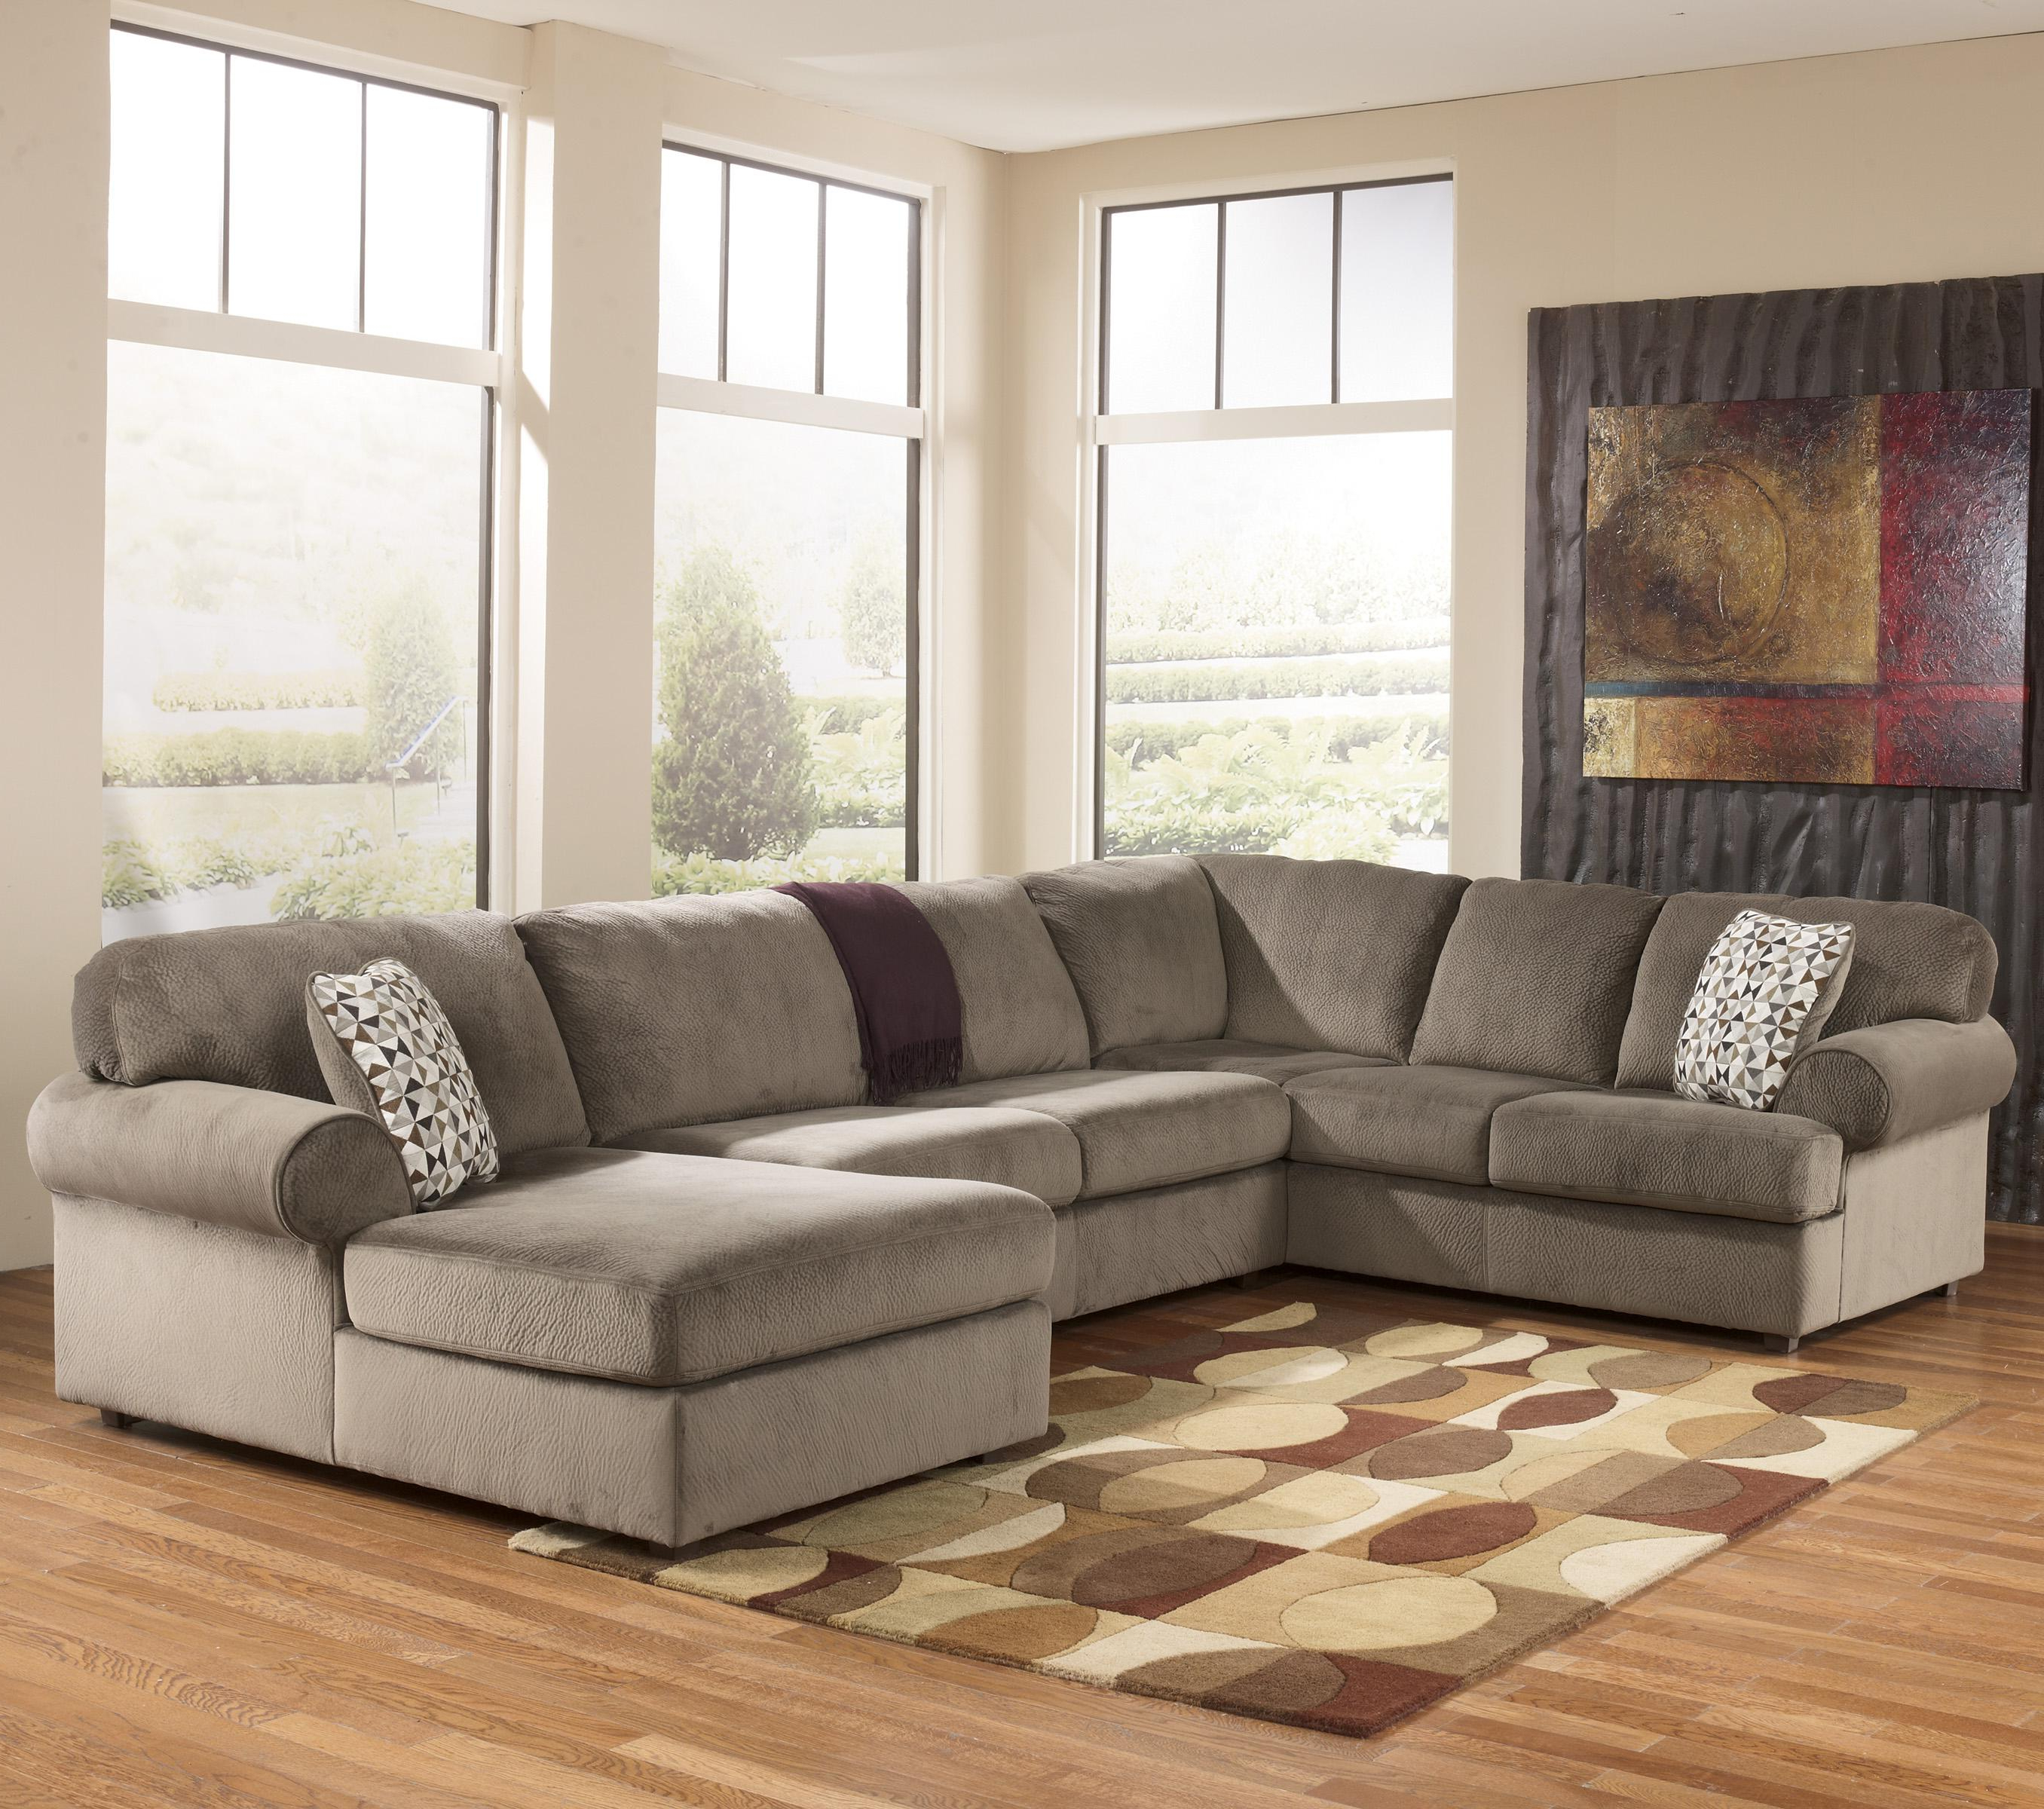 Laf Chaise Sectional Sofa (View 8 of 20)